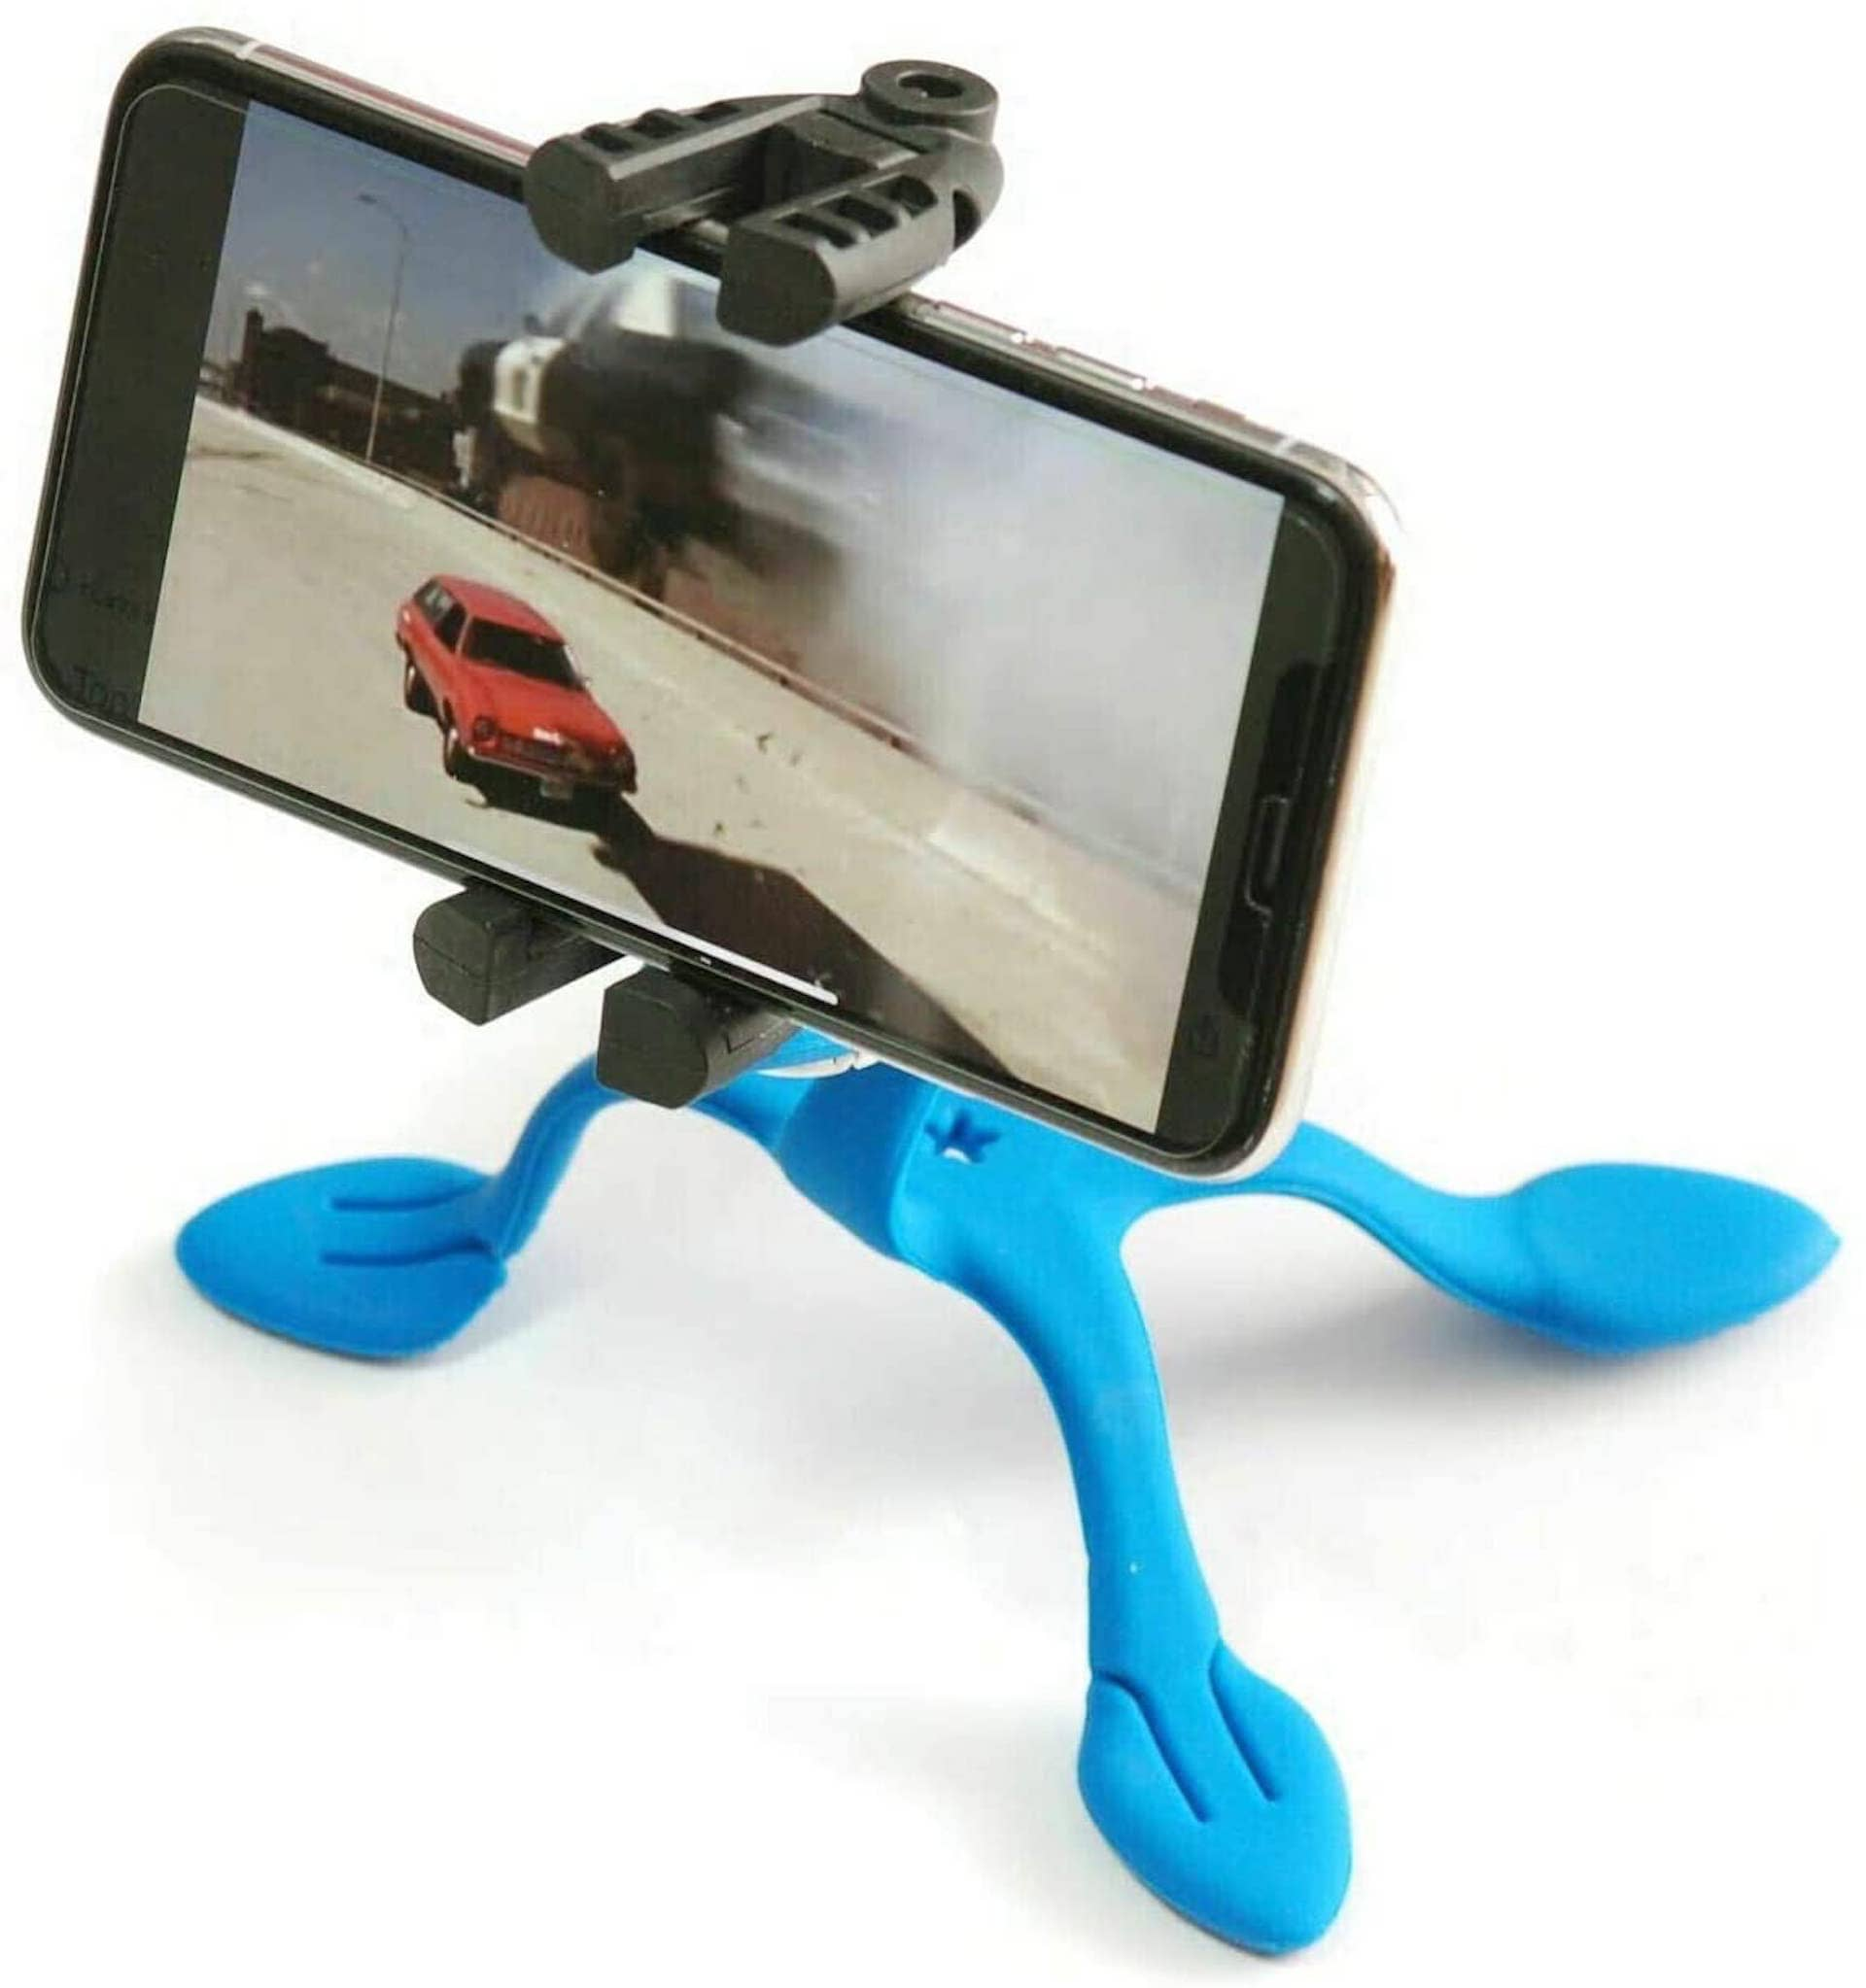 Best Photo Gifts for Photographers - Ideas Photographer Lovers - Phone Stand